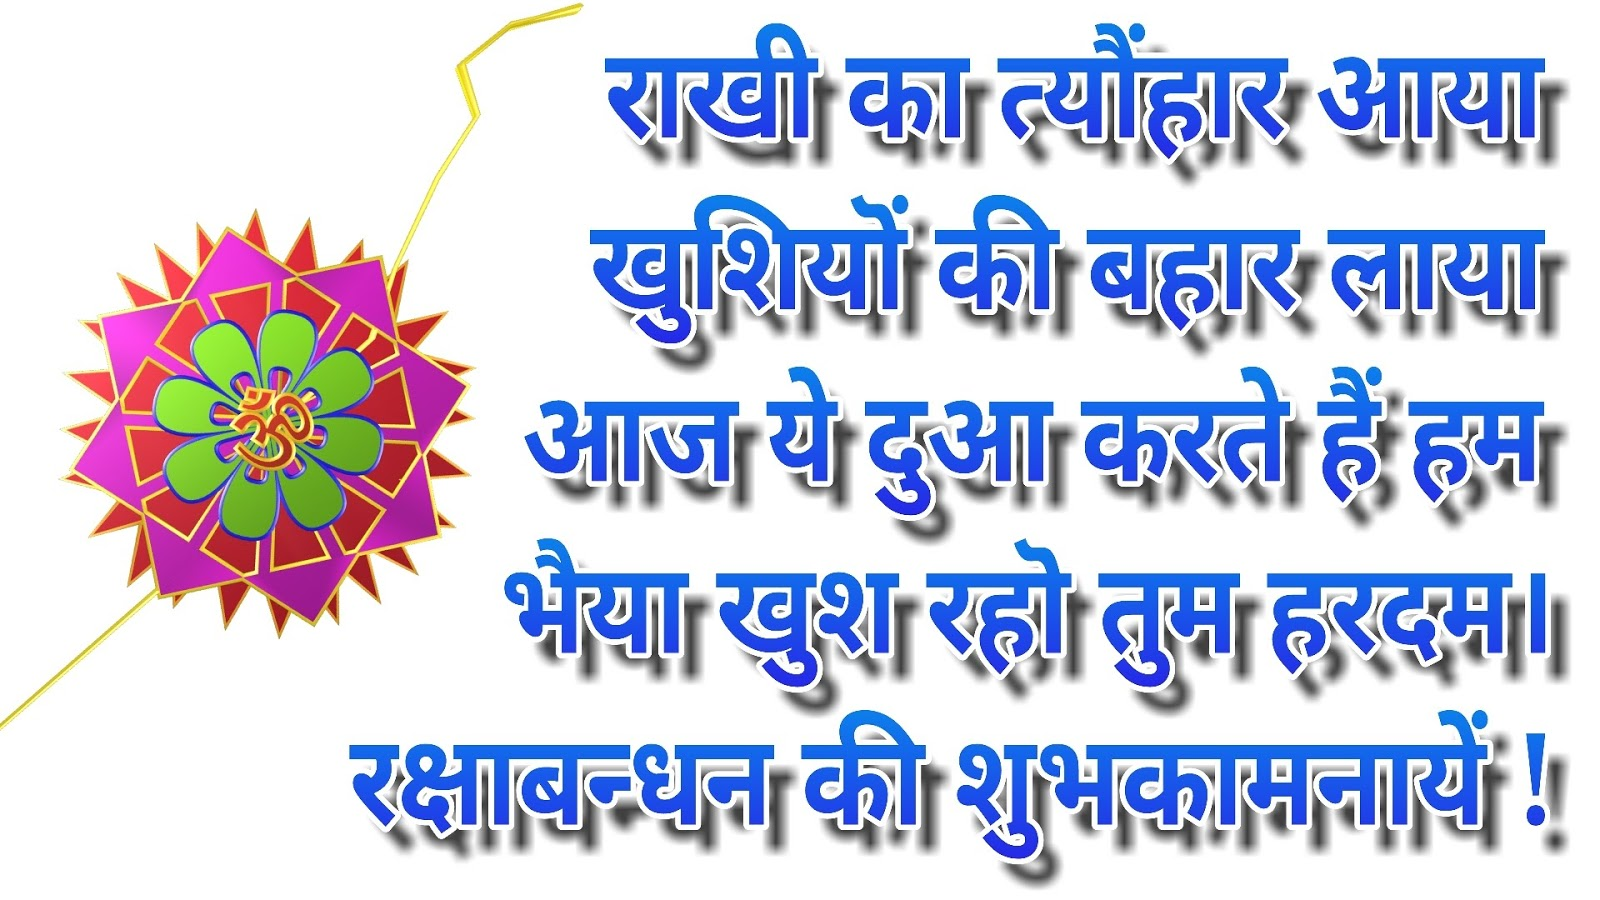 raksha bandhan essay in hindi Raksha bandhan essay in hindi and and all information about rakshabandhan history for students रक्षाबंधन की जानकारी और.